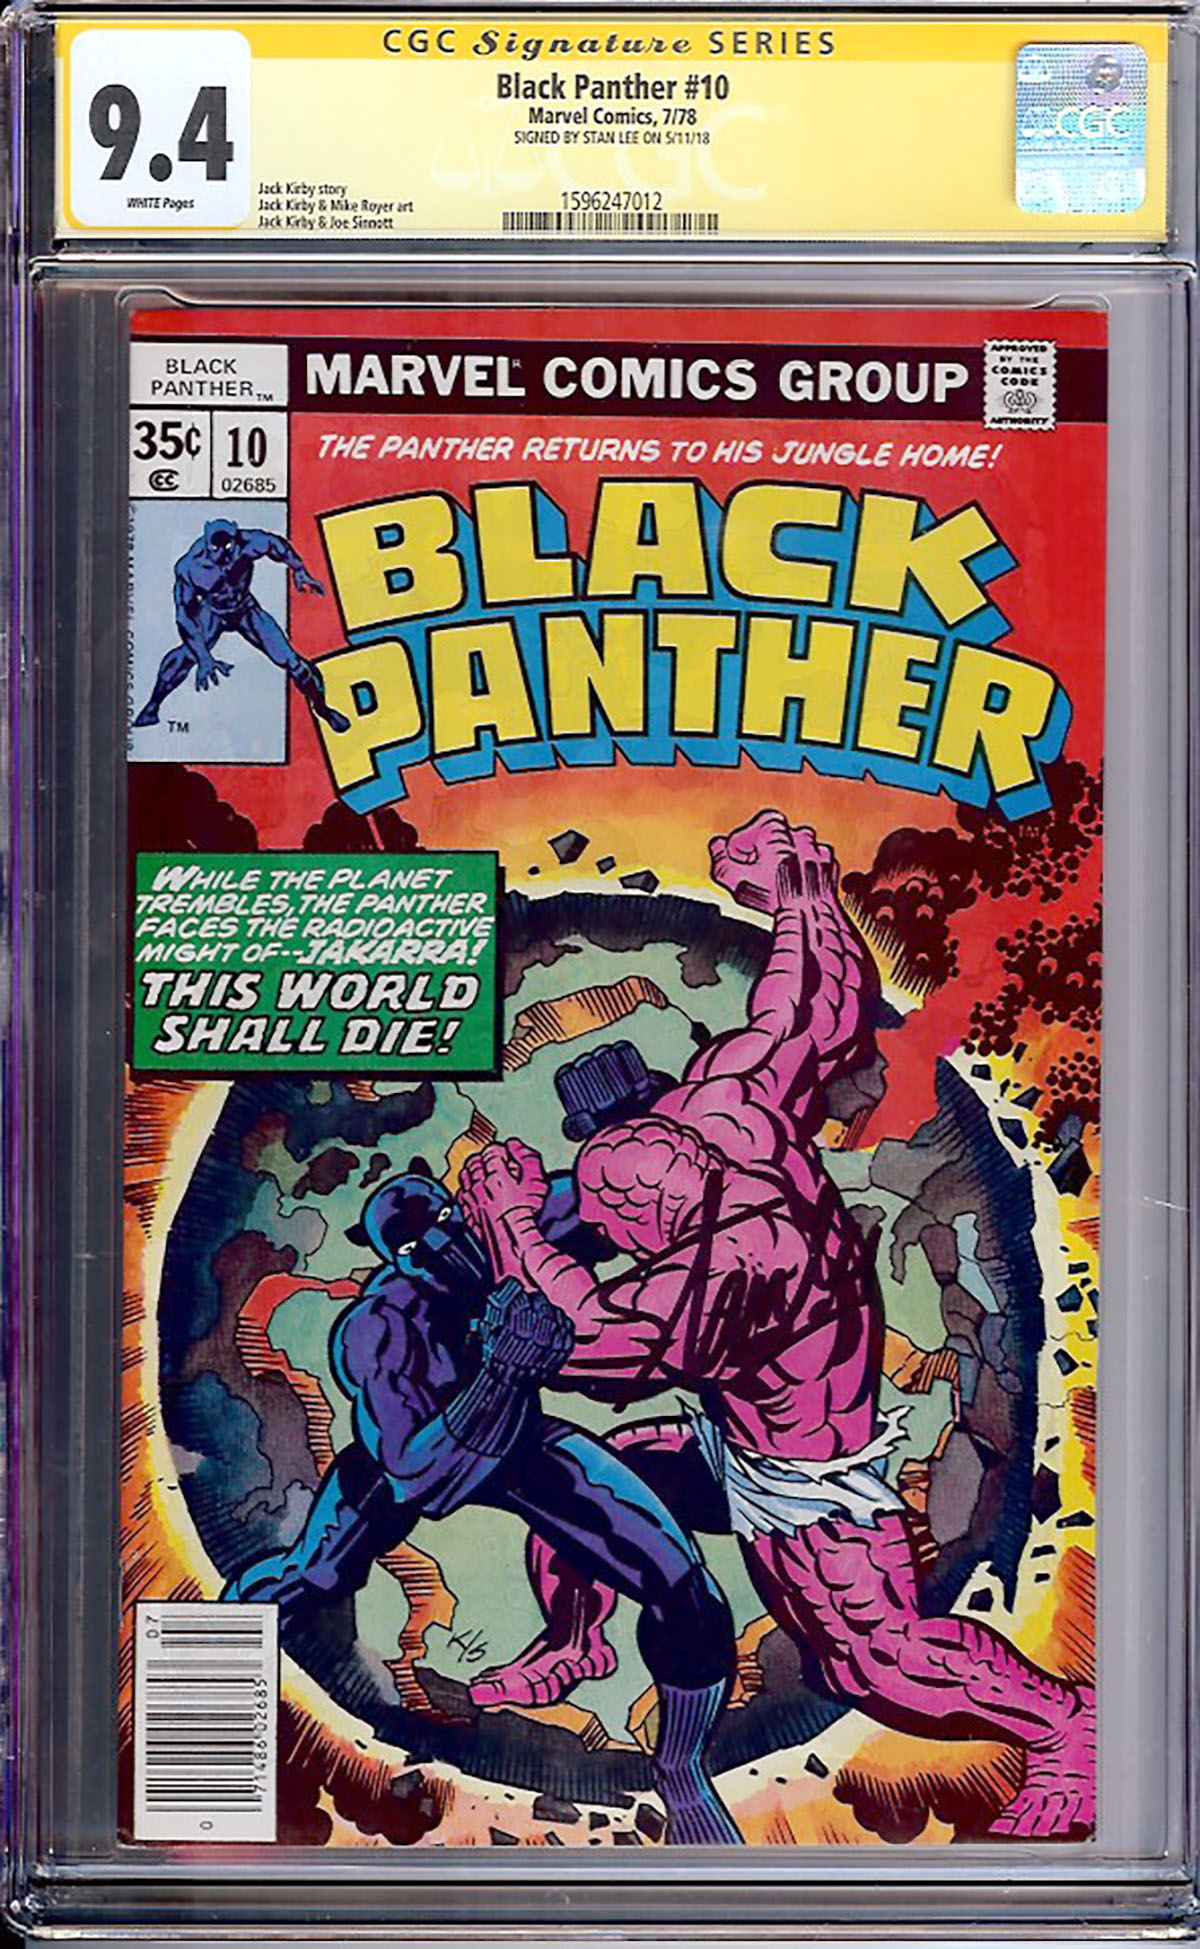 Black Panther #10 CGC 9.4 w CGC Signature SERIES